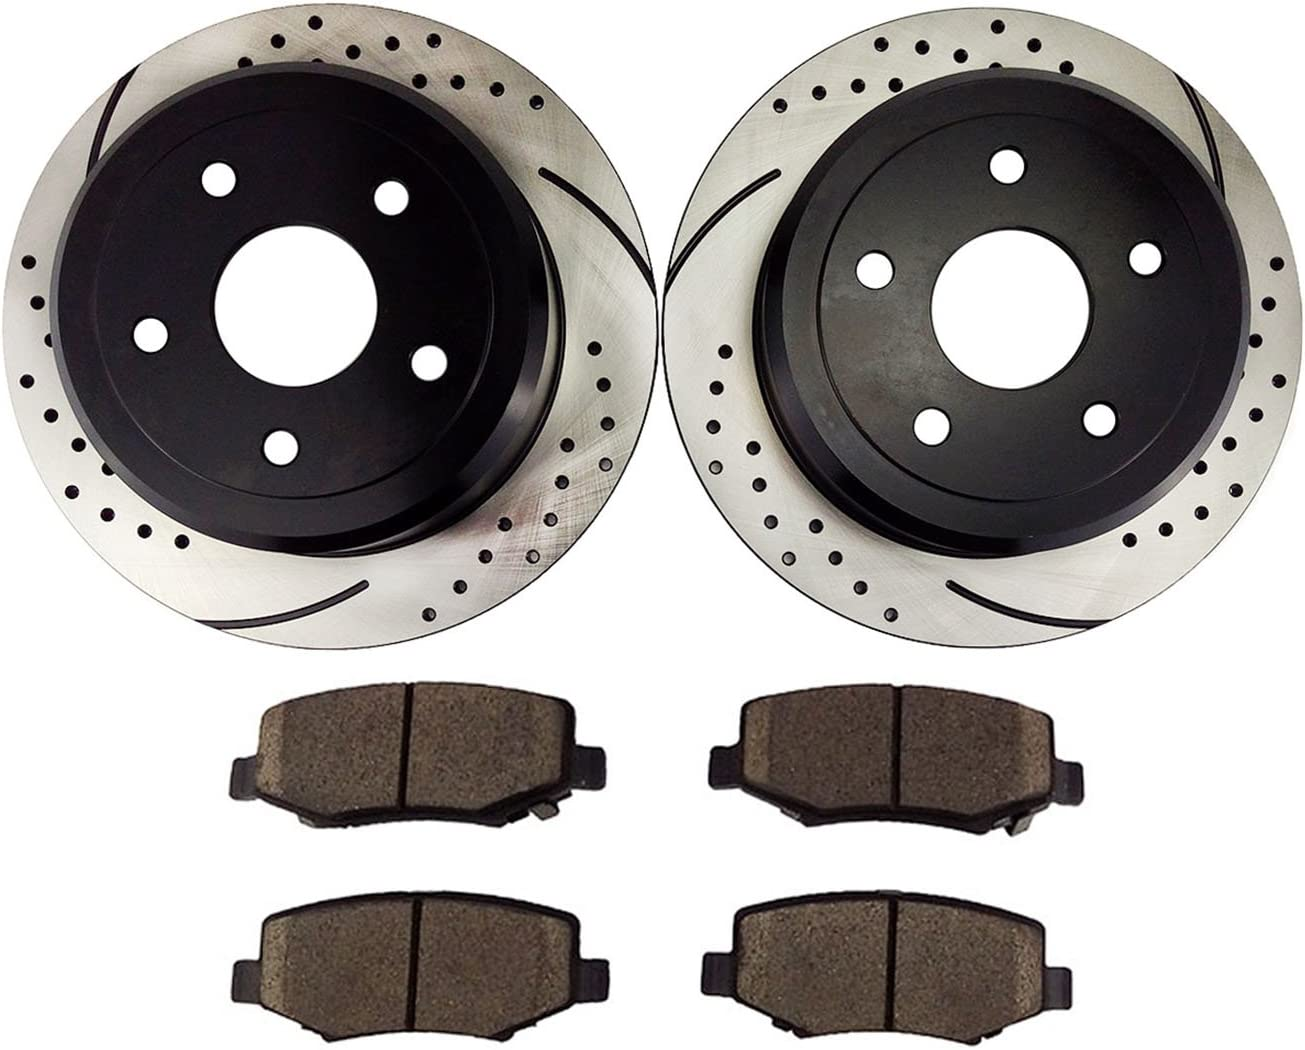 Atmansta QPD10012 Rear Slotted /& Drilled Rotors and Ceramic Pads Brake Kit for 2007-12 Jeep Wrangler 53041 D1274